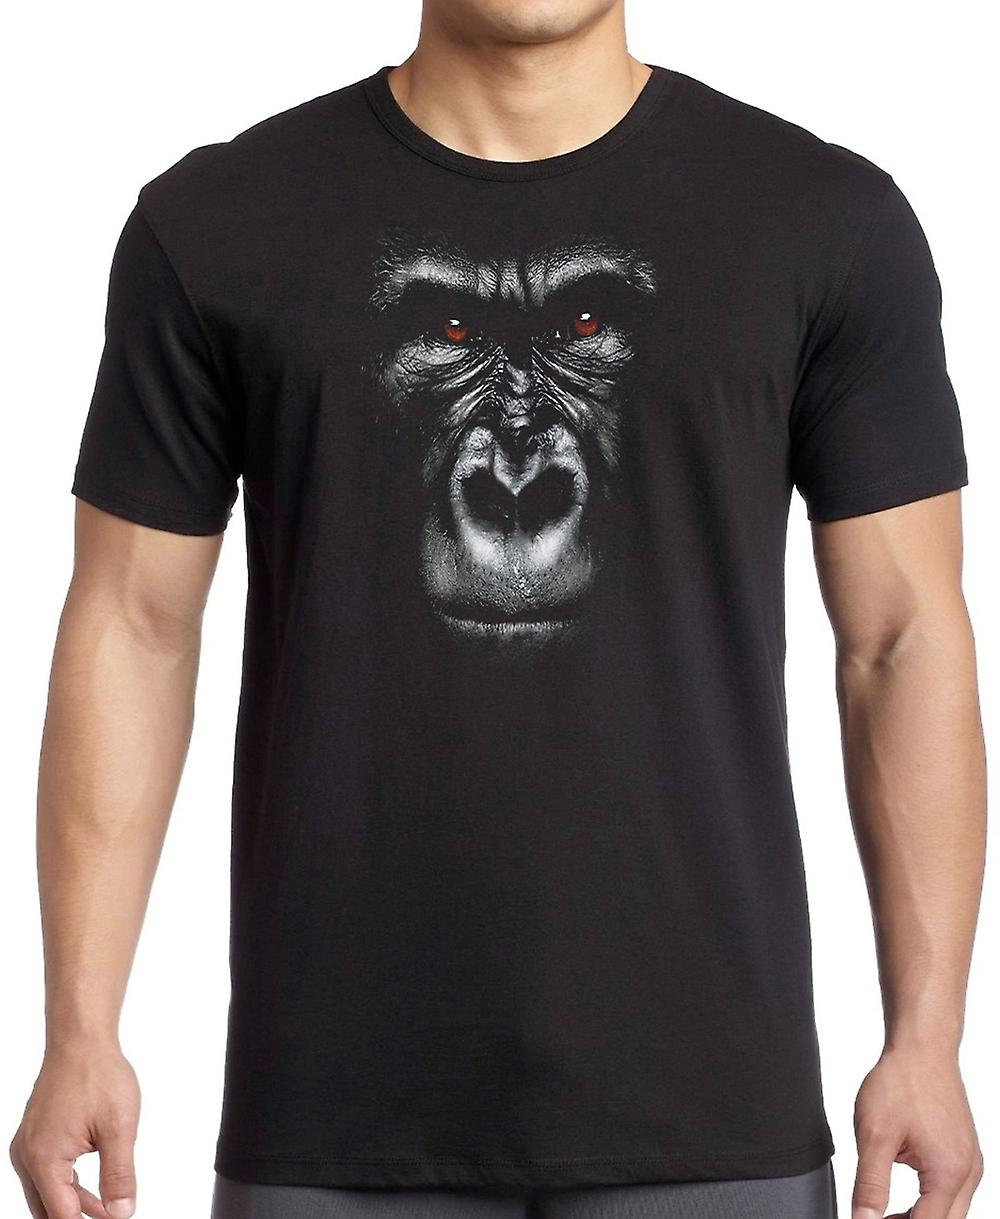 Gorilla Face - Cool Tee